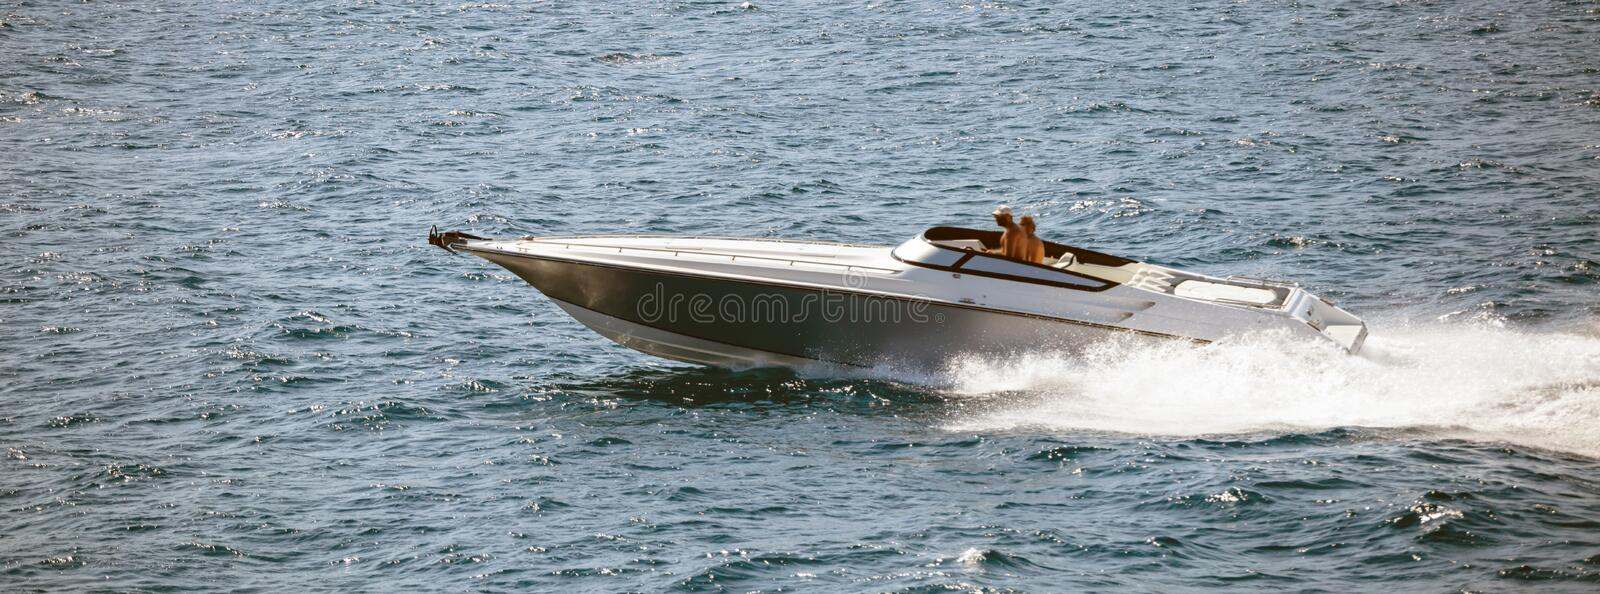 High-speed boat goes fast in calm sea. People enjoy the summer sport. Panoramic view, banner. stock photos